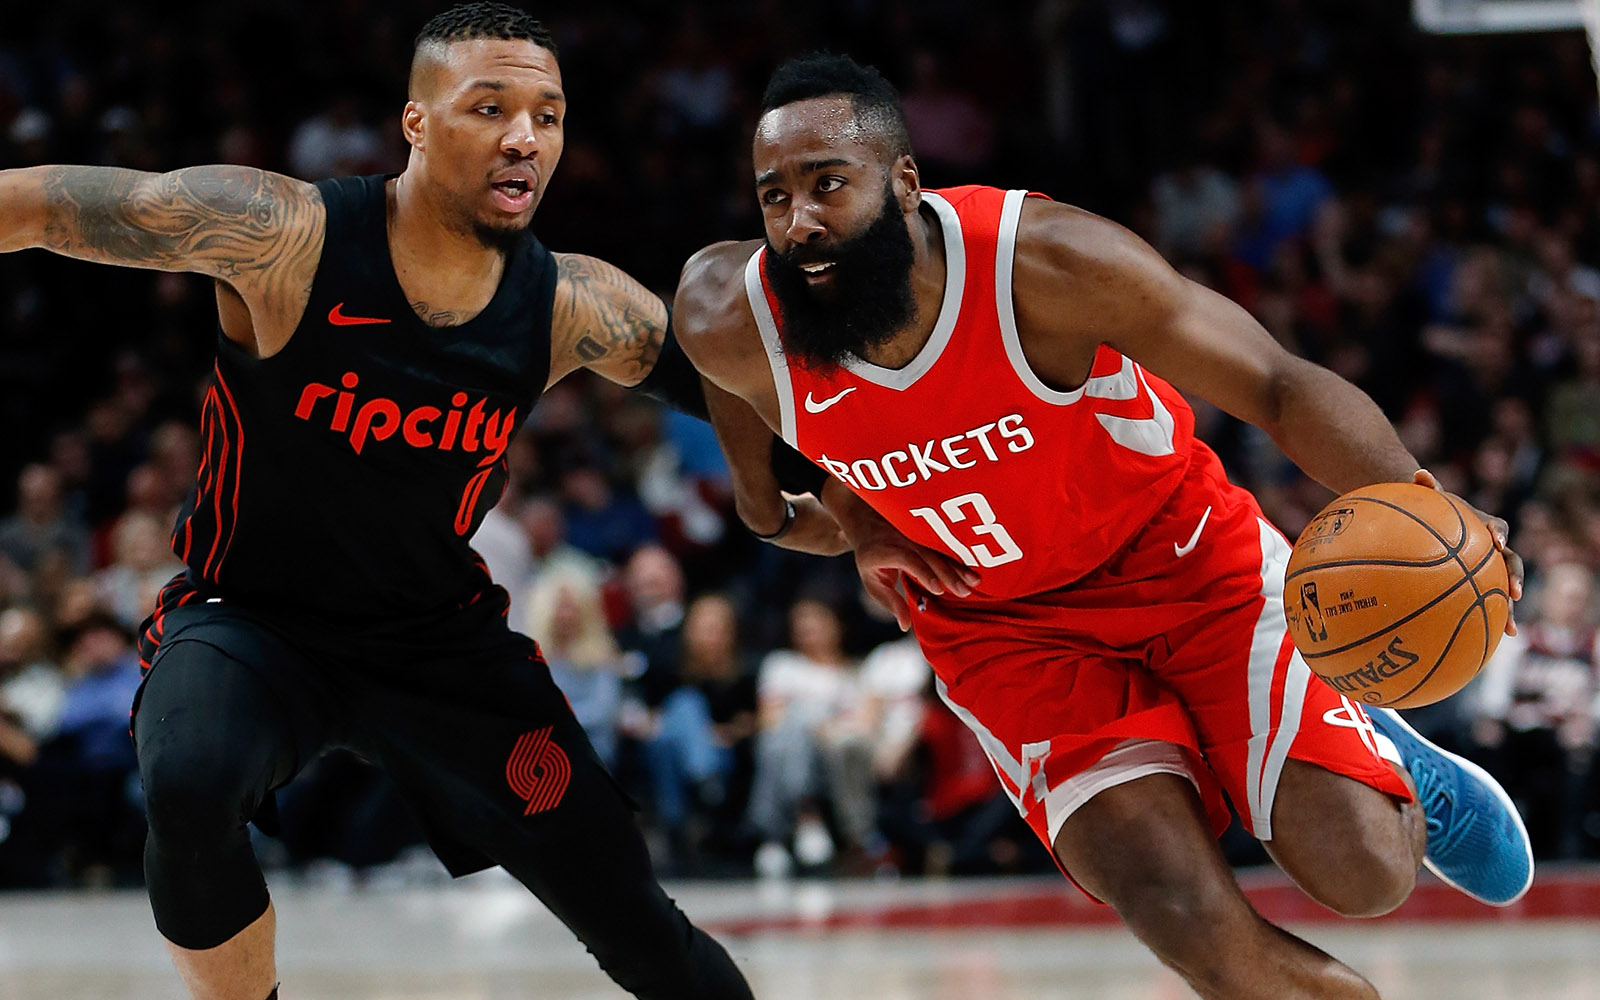 Damian Lillard and James Harden